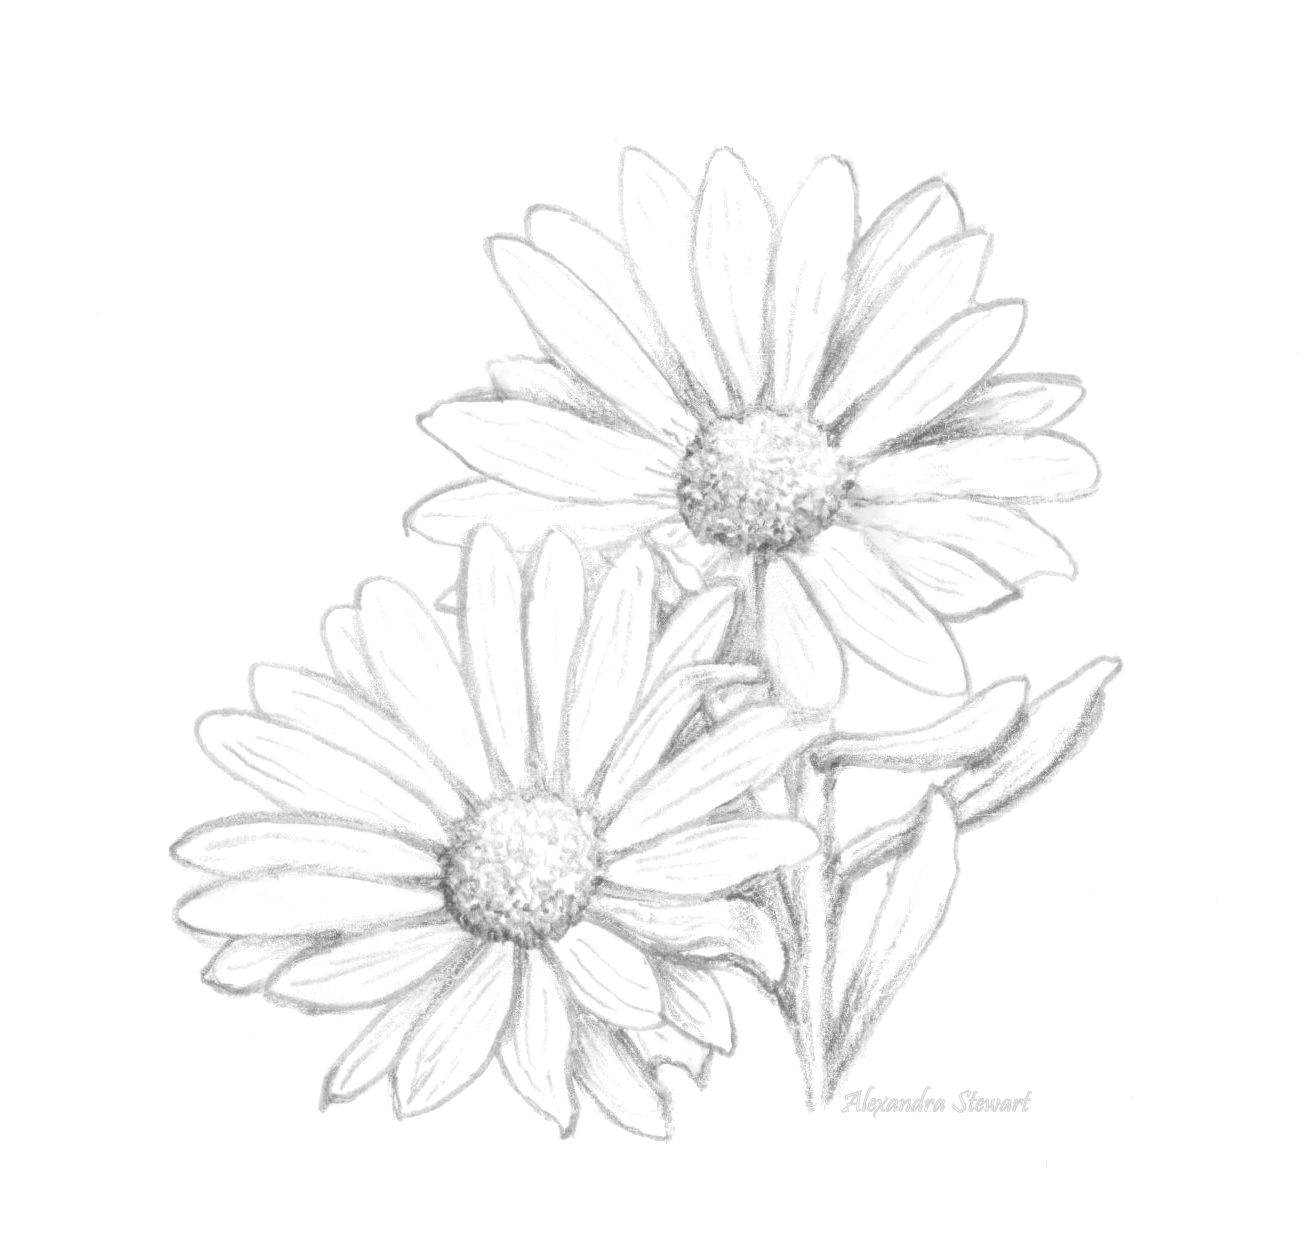 eletragesi: Daisy Tumblr Drawing Images